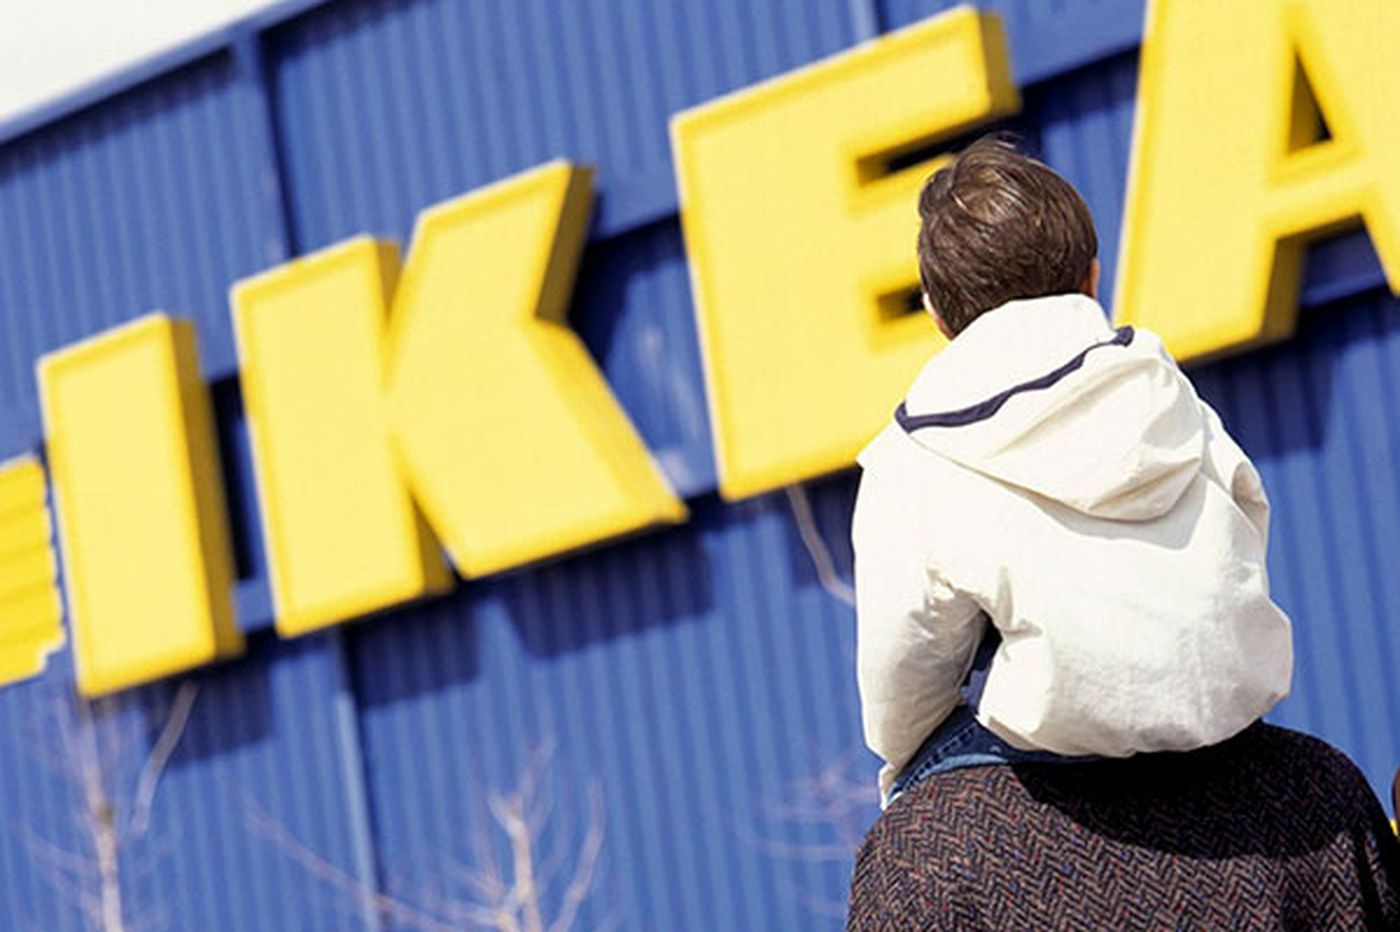 Ikea stamps out hide-and-seek games in furniture stores